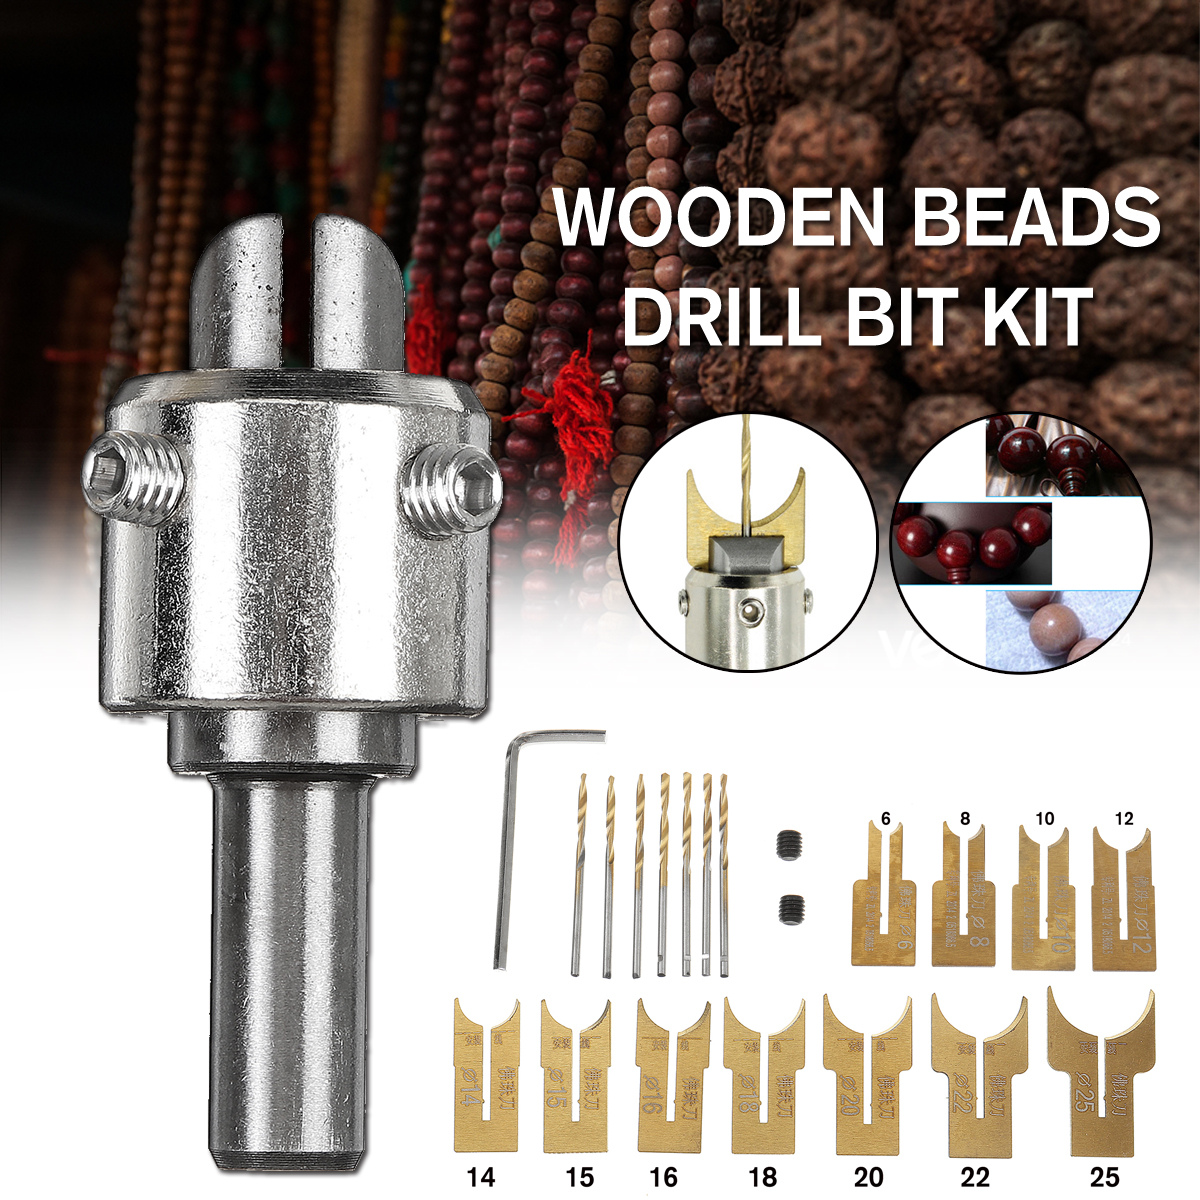 15% OFF for Wooden Bead Maker Beads Dril